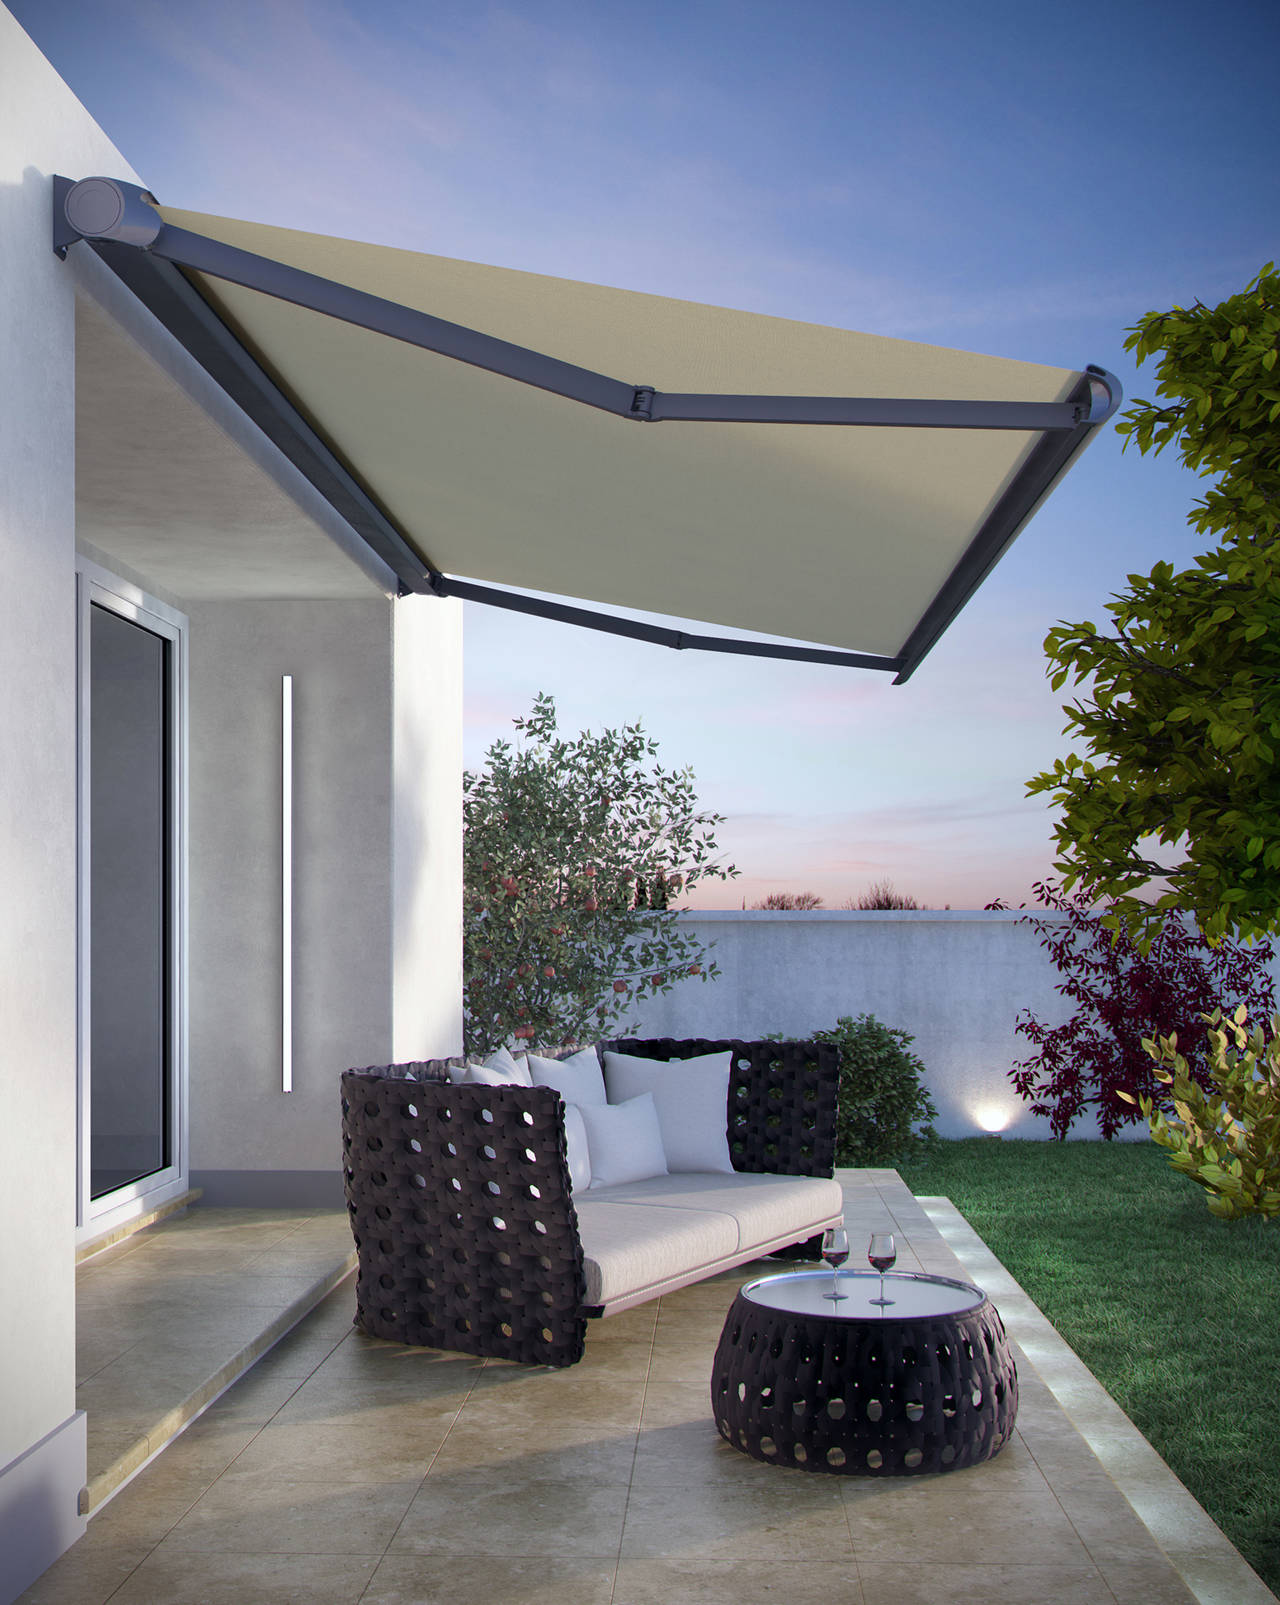 Tenda a bracci R93 by BT Group